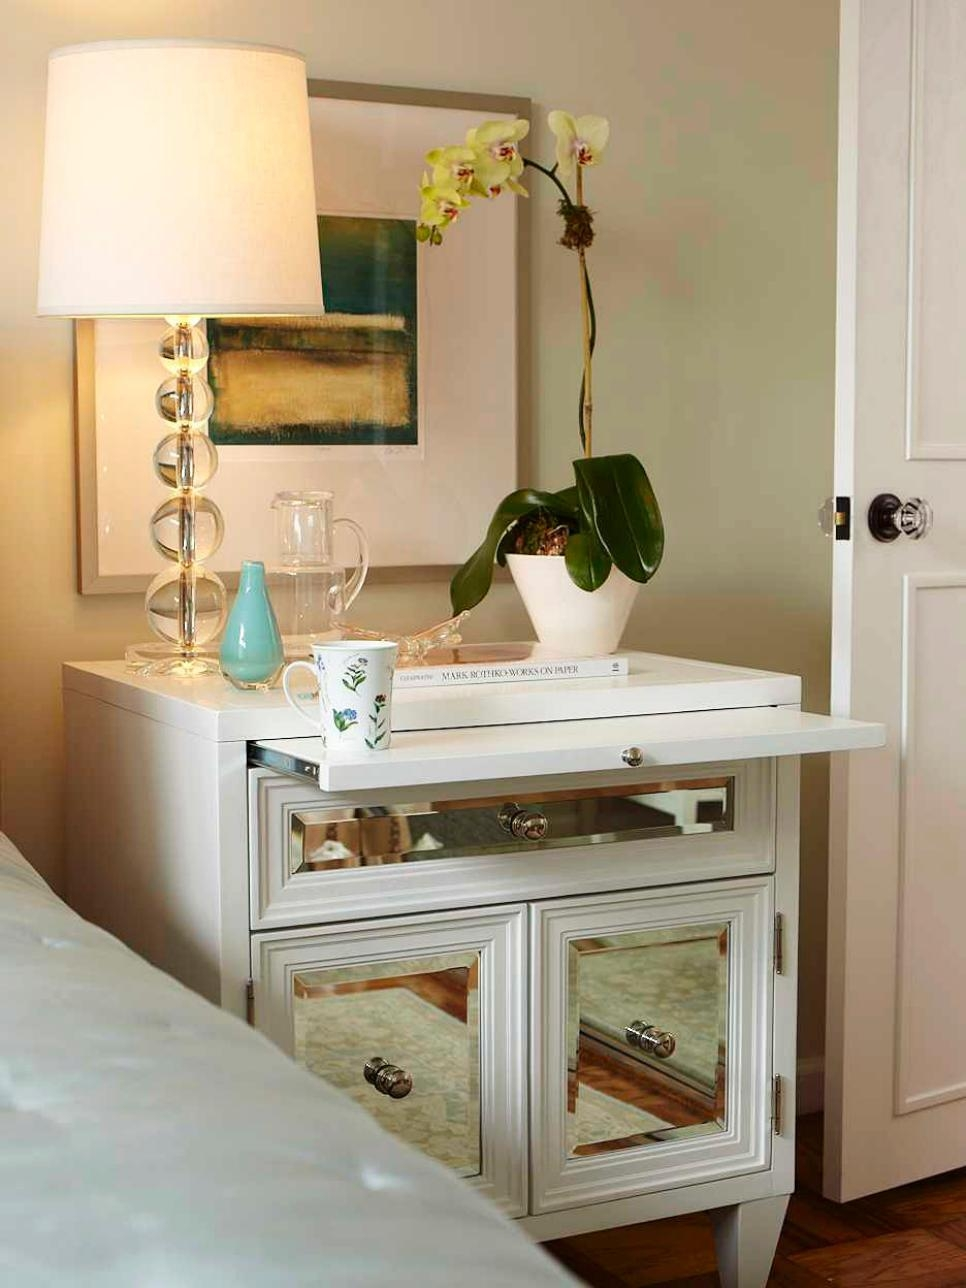 Spectacular Mirror Furniture Designs | Hgtv With Regard To Mirrored Furniture (Image 19 of 20)